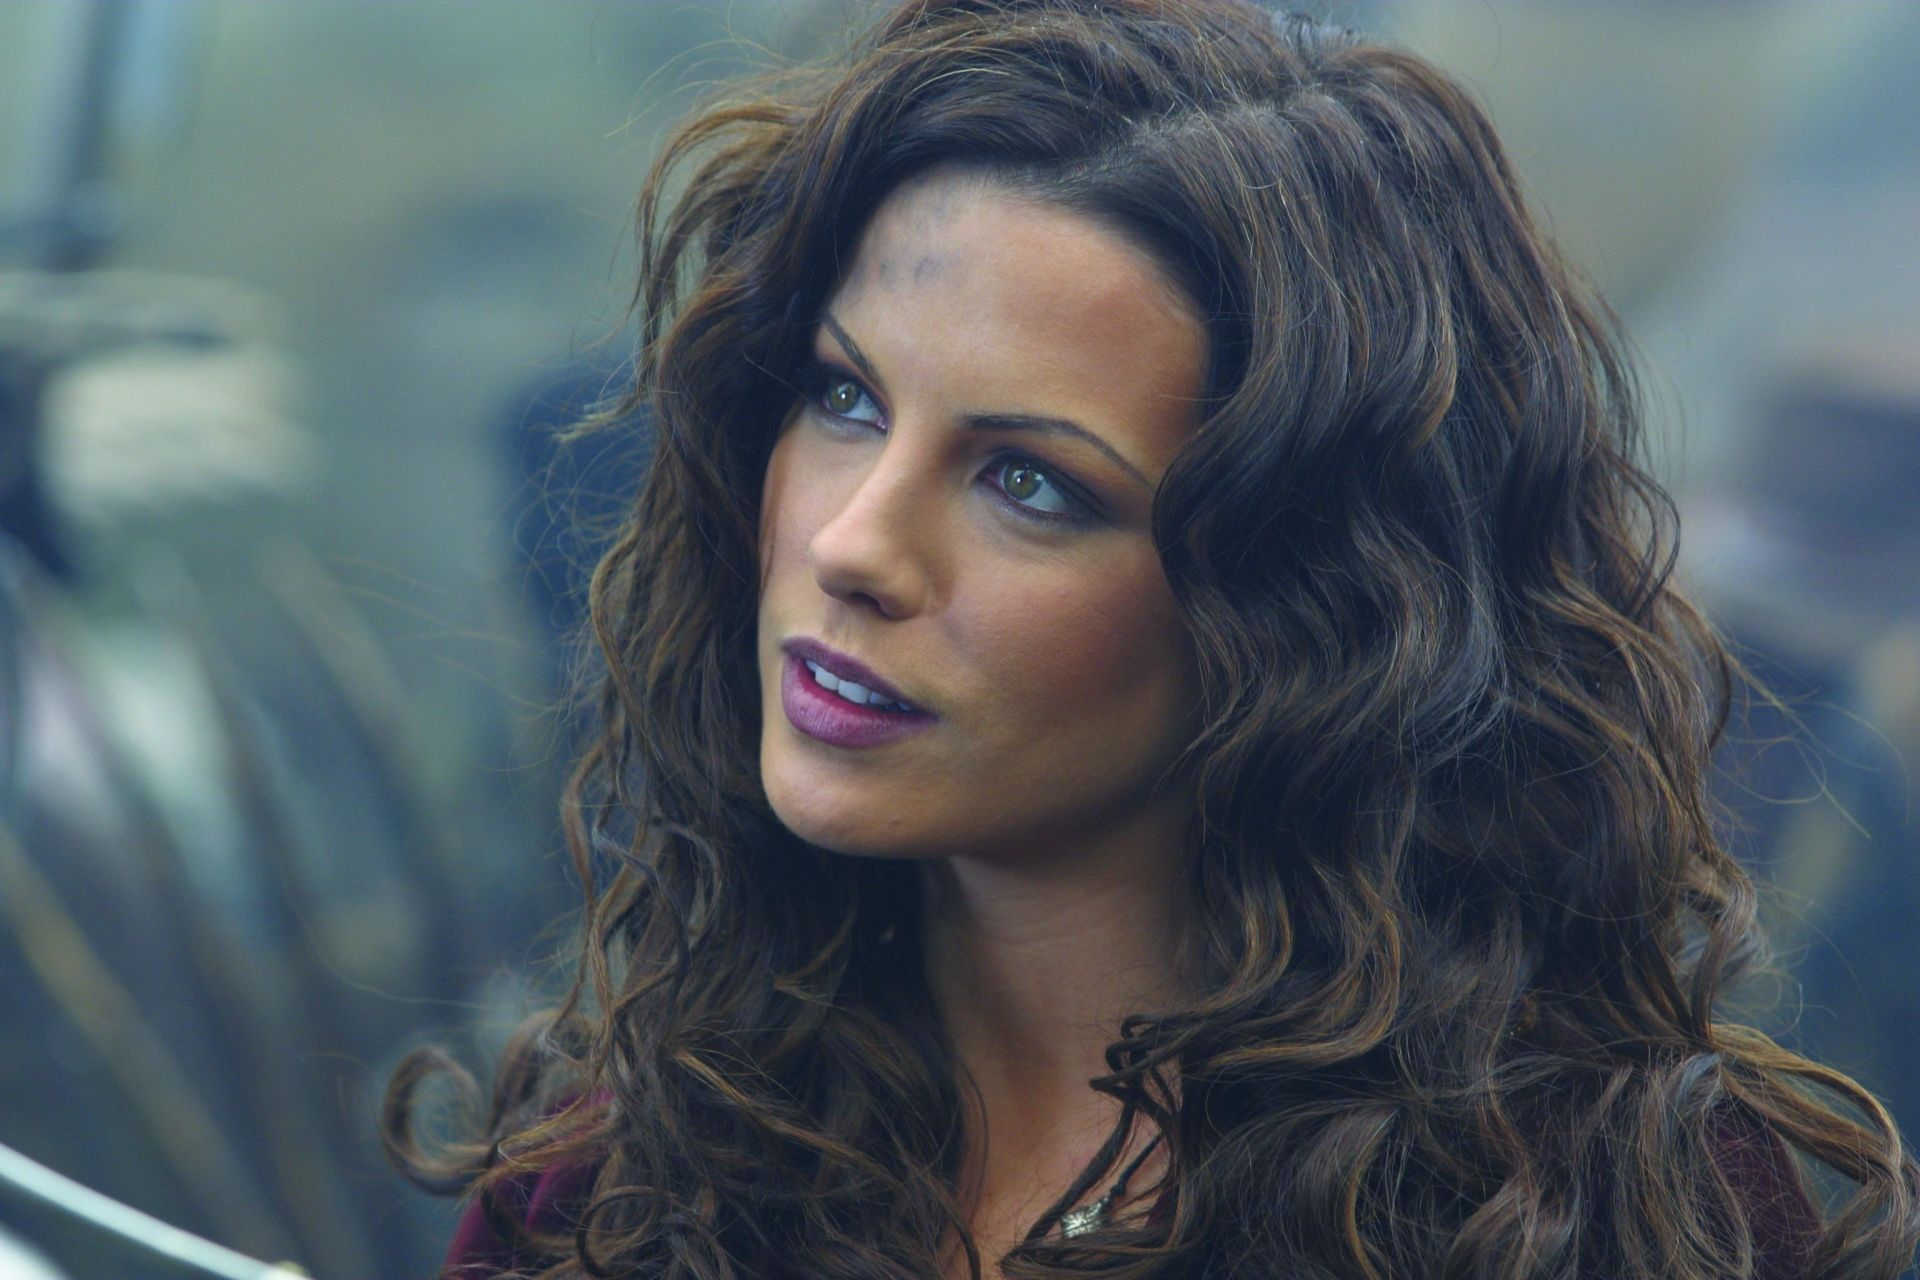 Movie Van Helsing Kate Beckinsale Wallpaper In 2019 Kate